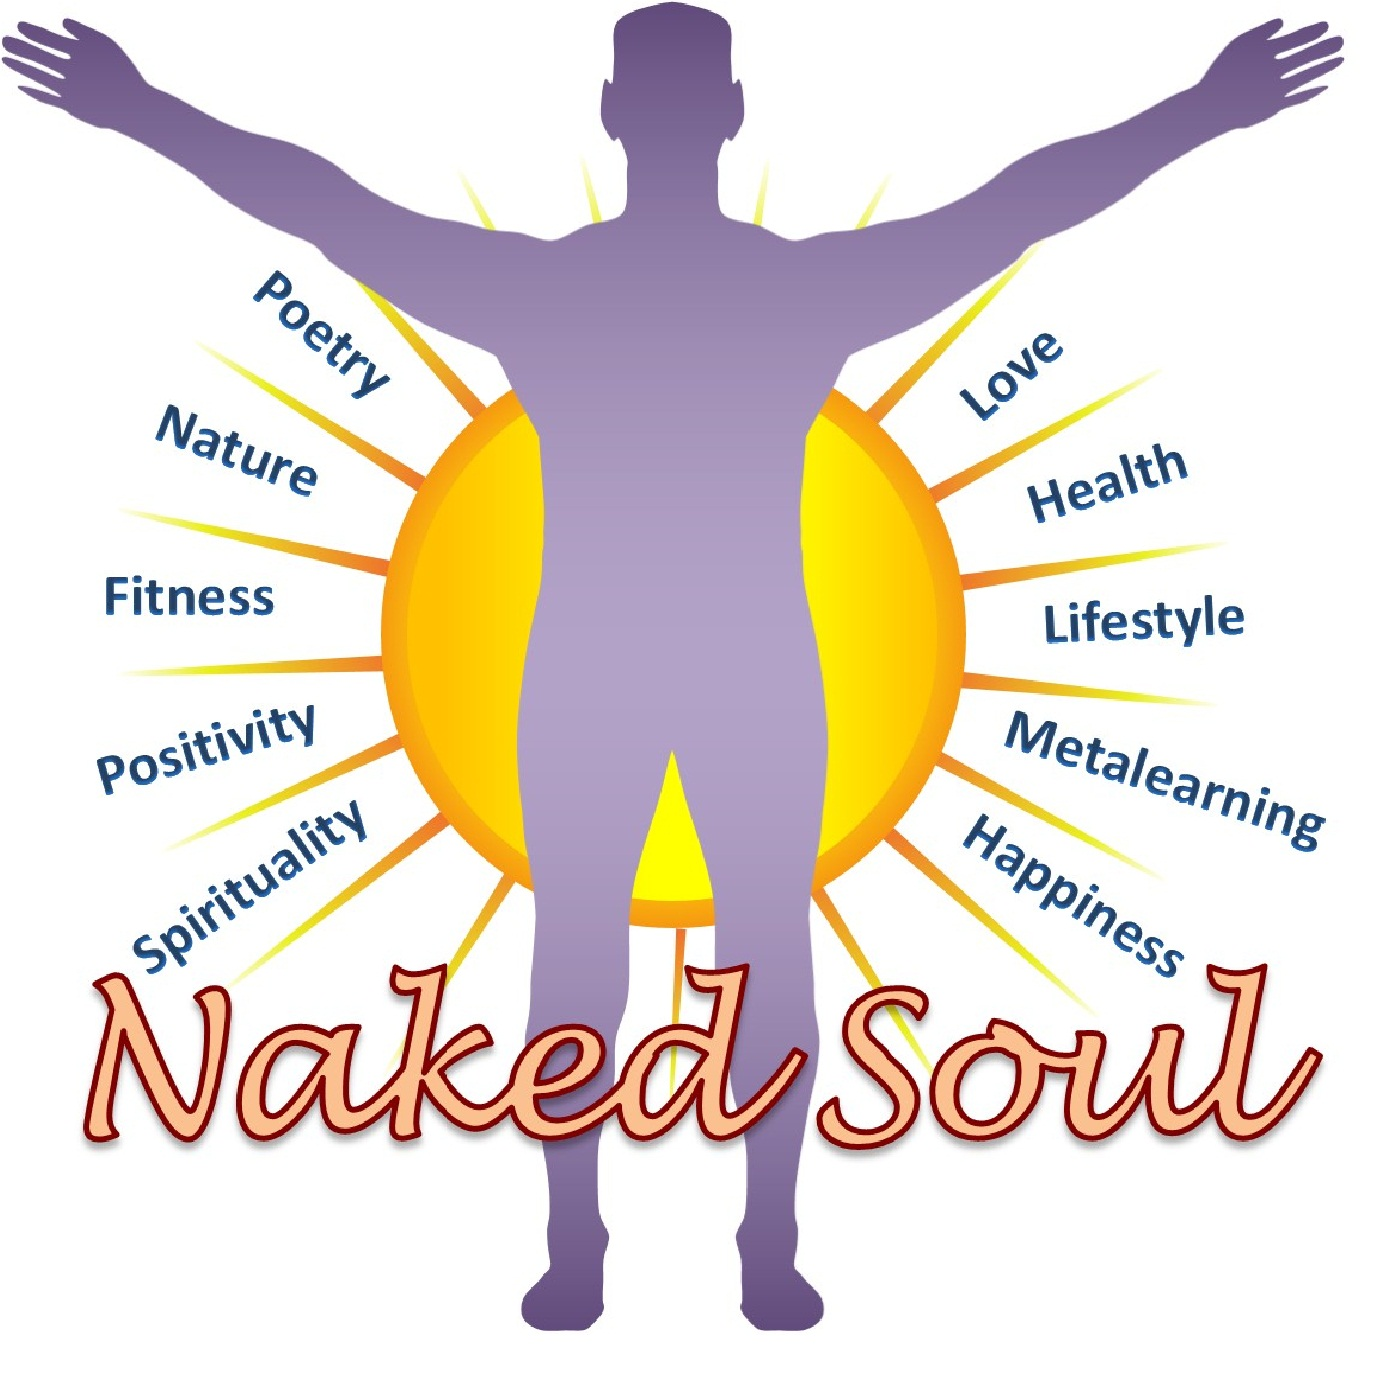 naked soul meaning